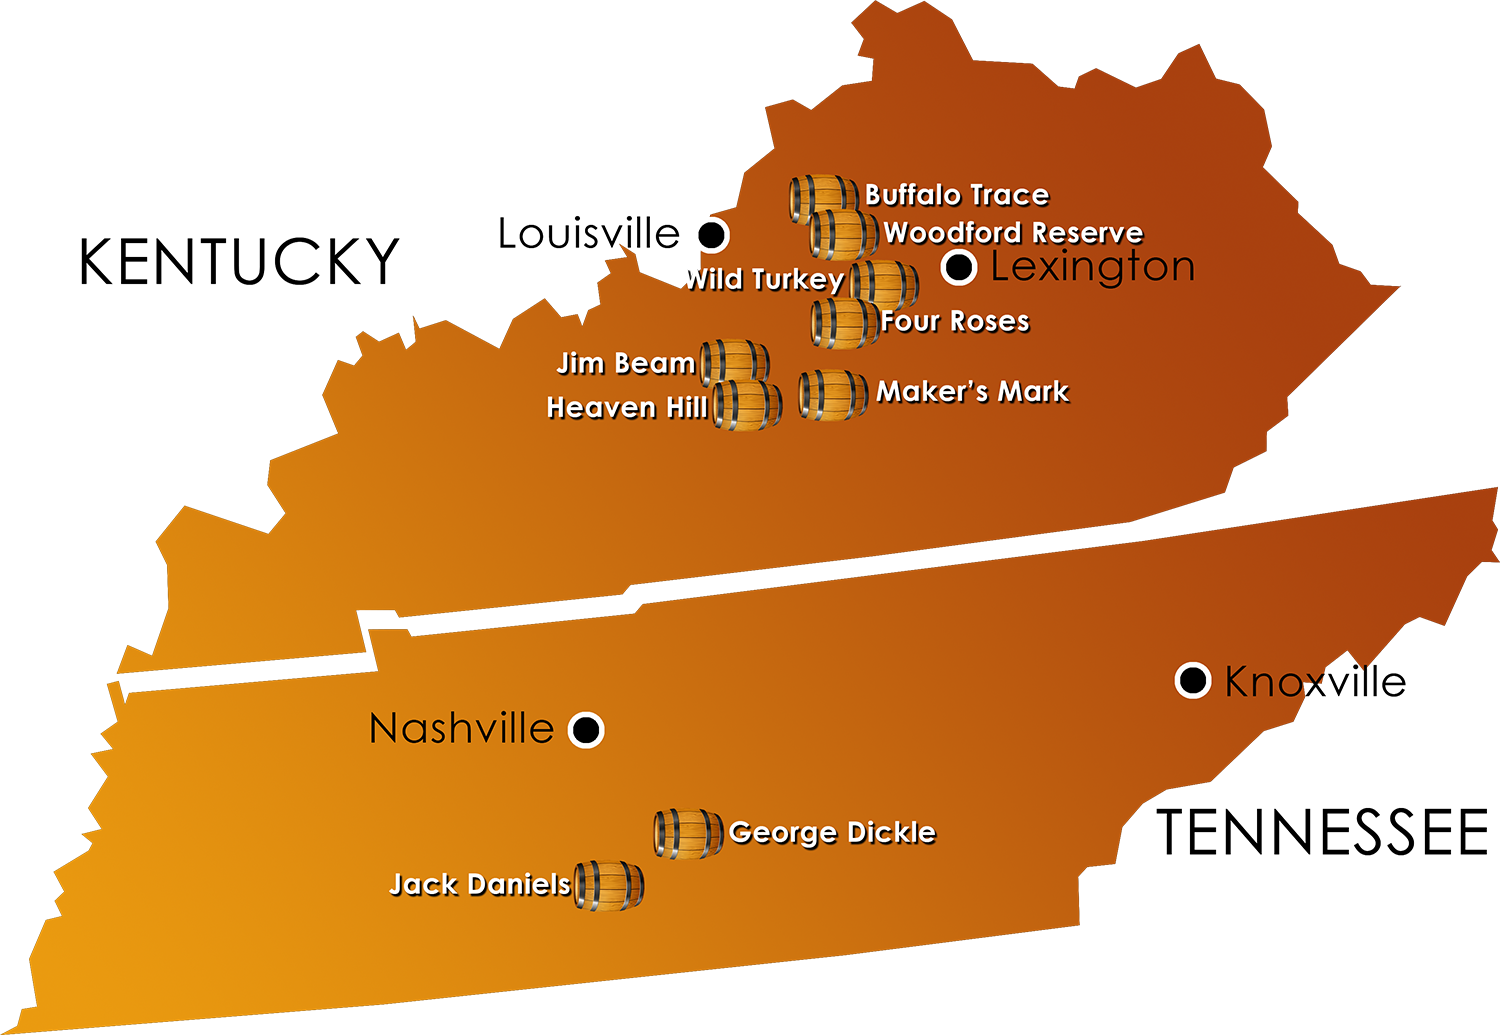 Map of Kentucky & Tennessee and prominent distillery locations